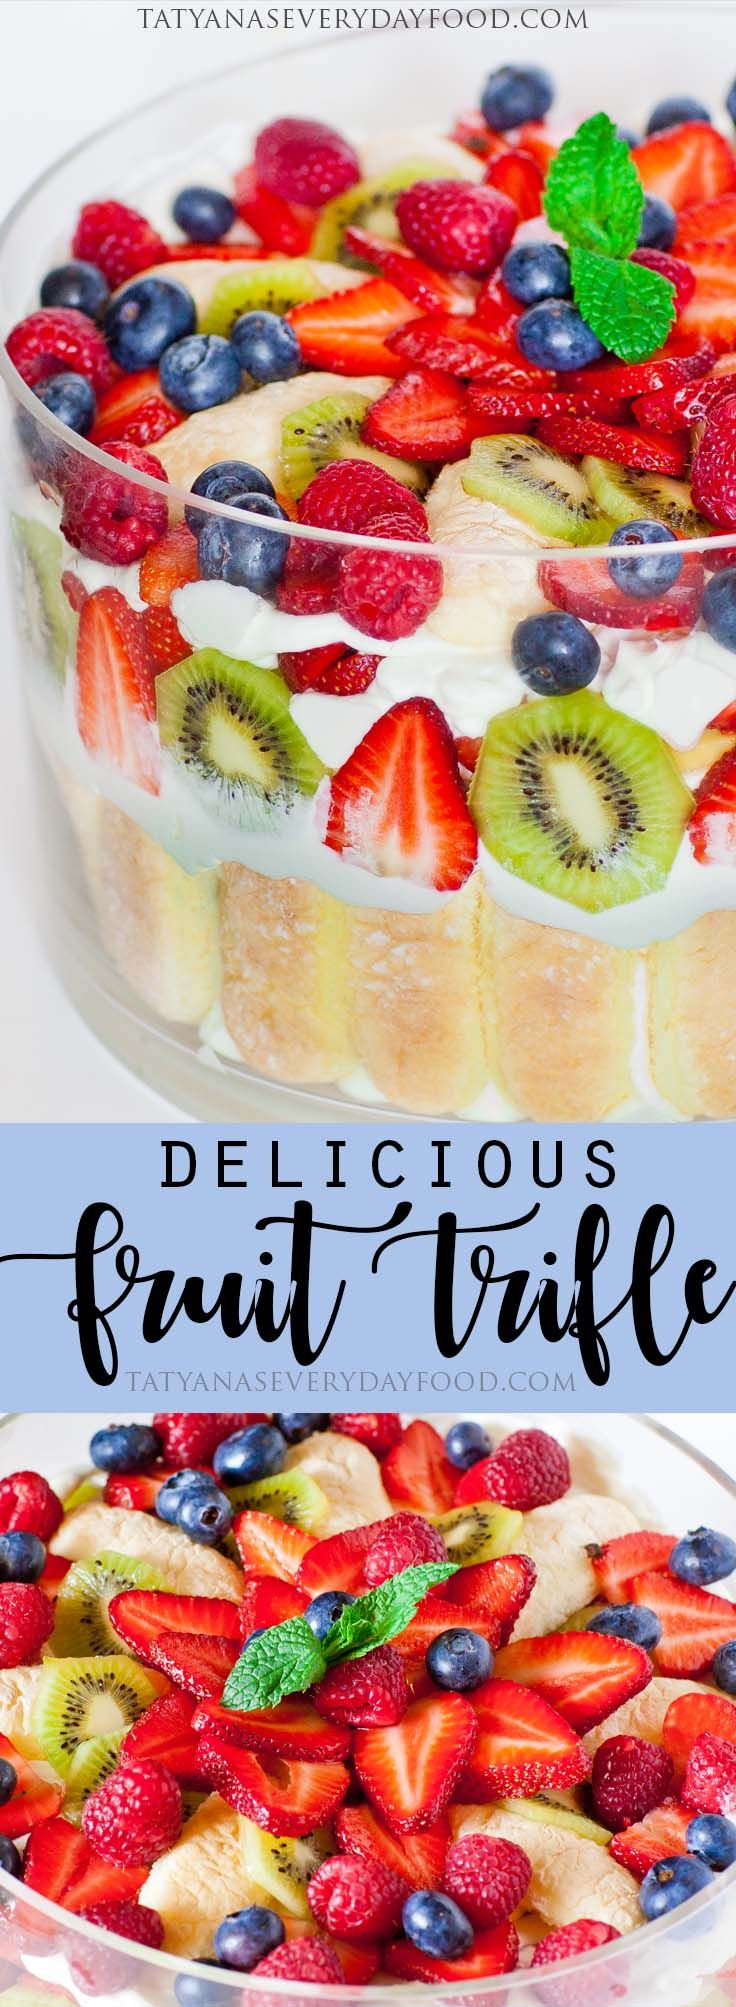 I love no-bake desserts like this one! It's so easy to put together and can be served immediately. This dish will feed a crowd so it's perfect for a picnic or large family get together! Watch my YouTube video for step-by-step video tutorial!